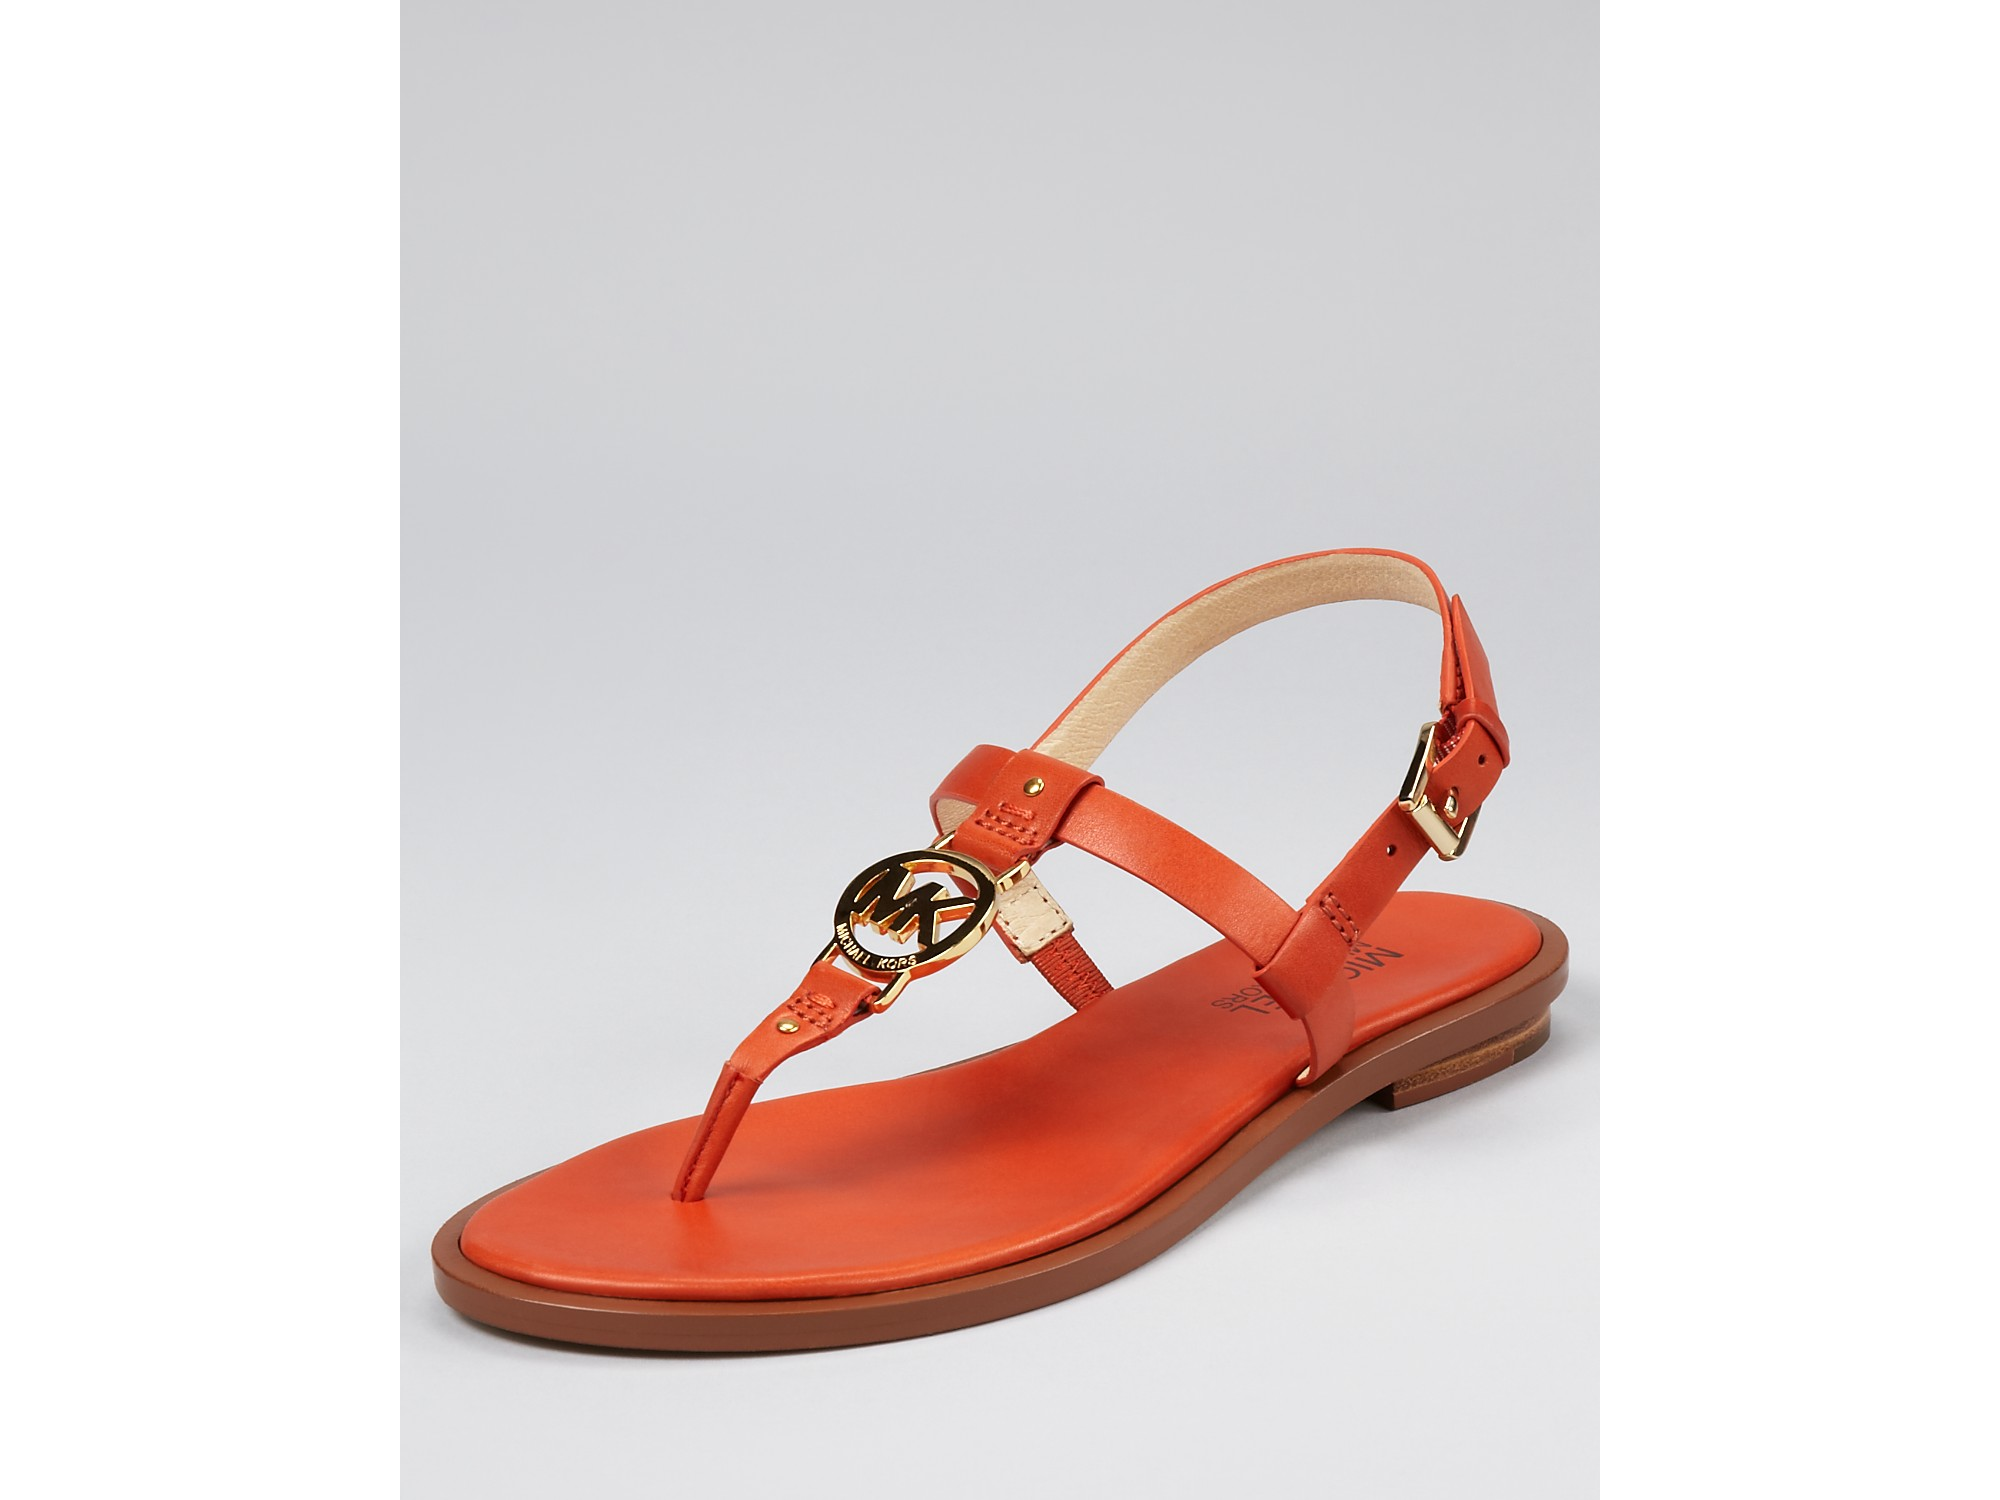 7dcb67df4628 Lyst - Michael Kors Sondra Flat Sandals in Orange